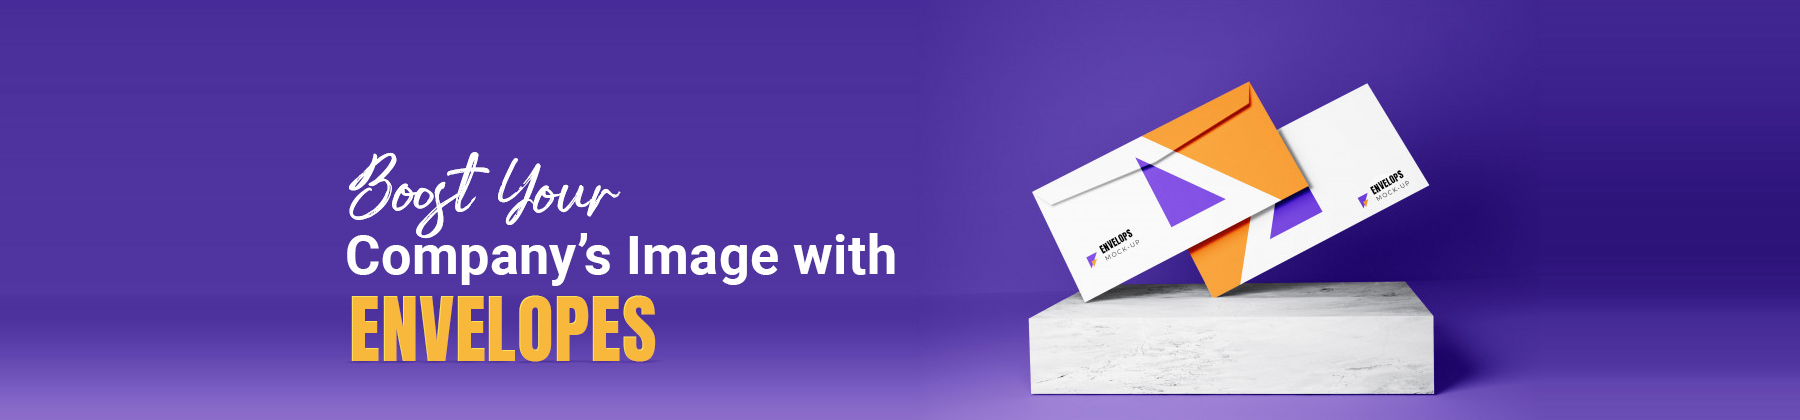 Boost Your Company's Image with Envelopes